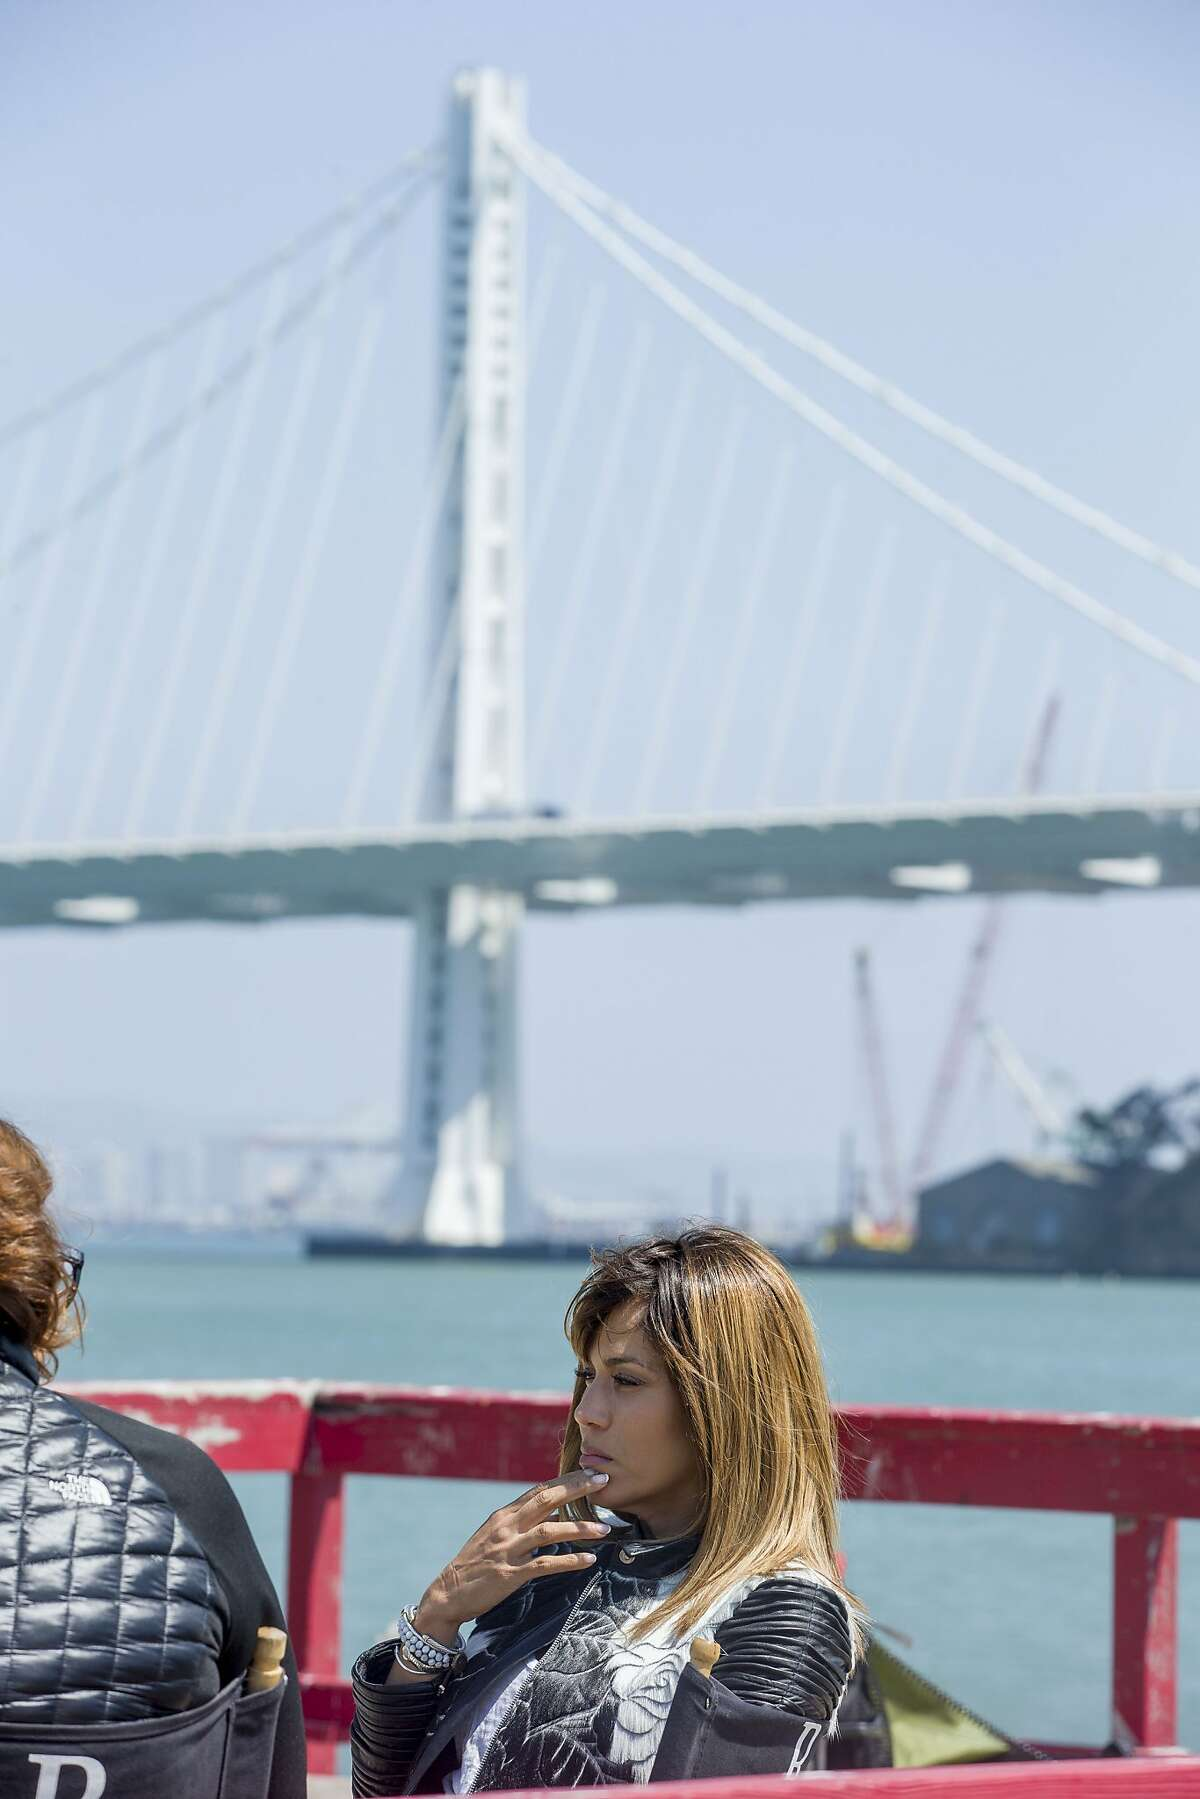 Nicole Ari Parker is interviewed on the set for the new movie HeadShop at Treasure Island on Wednesday, Aug. 16, 2017, in San Francisco, Calif. HeadShop is directed by Kim Bass and stars Nicole Ari Parker.